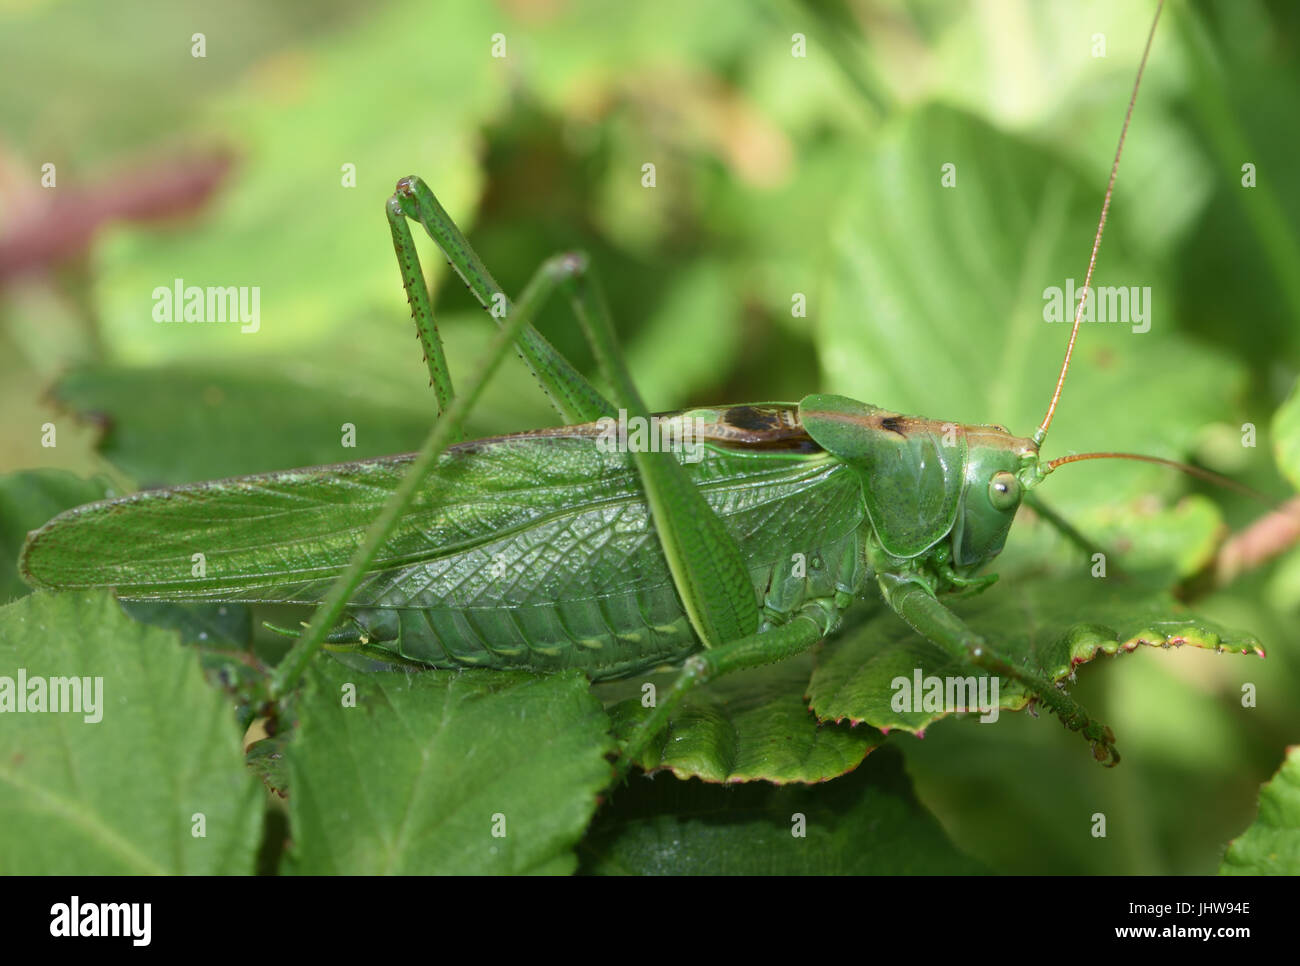 Eine große weibliche große Green Bush-Cricket (Tettigonia Viridissima). Cuckmere Haven, Sussex, UK. Stockfoto